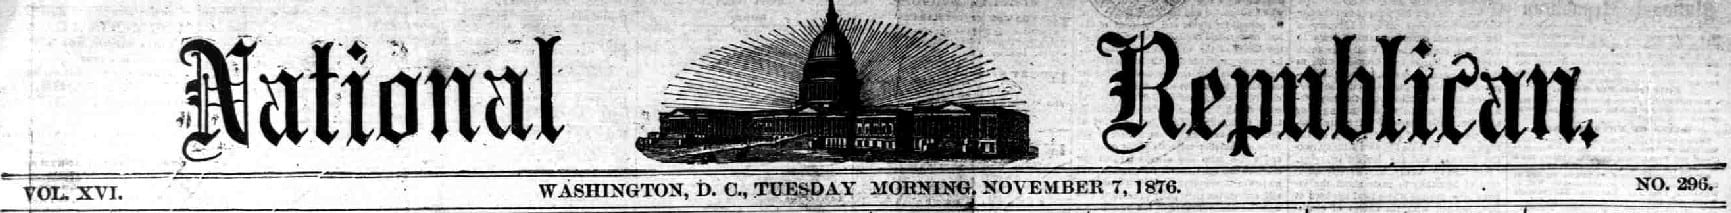 National Republican - Tuesday, November 7th, 1876